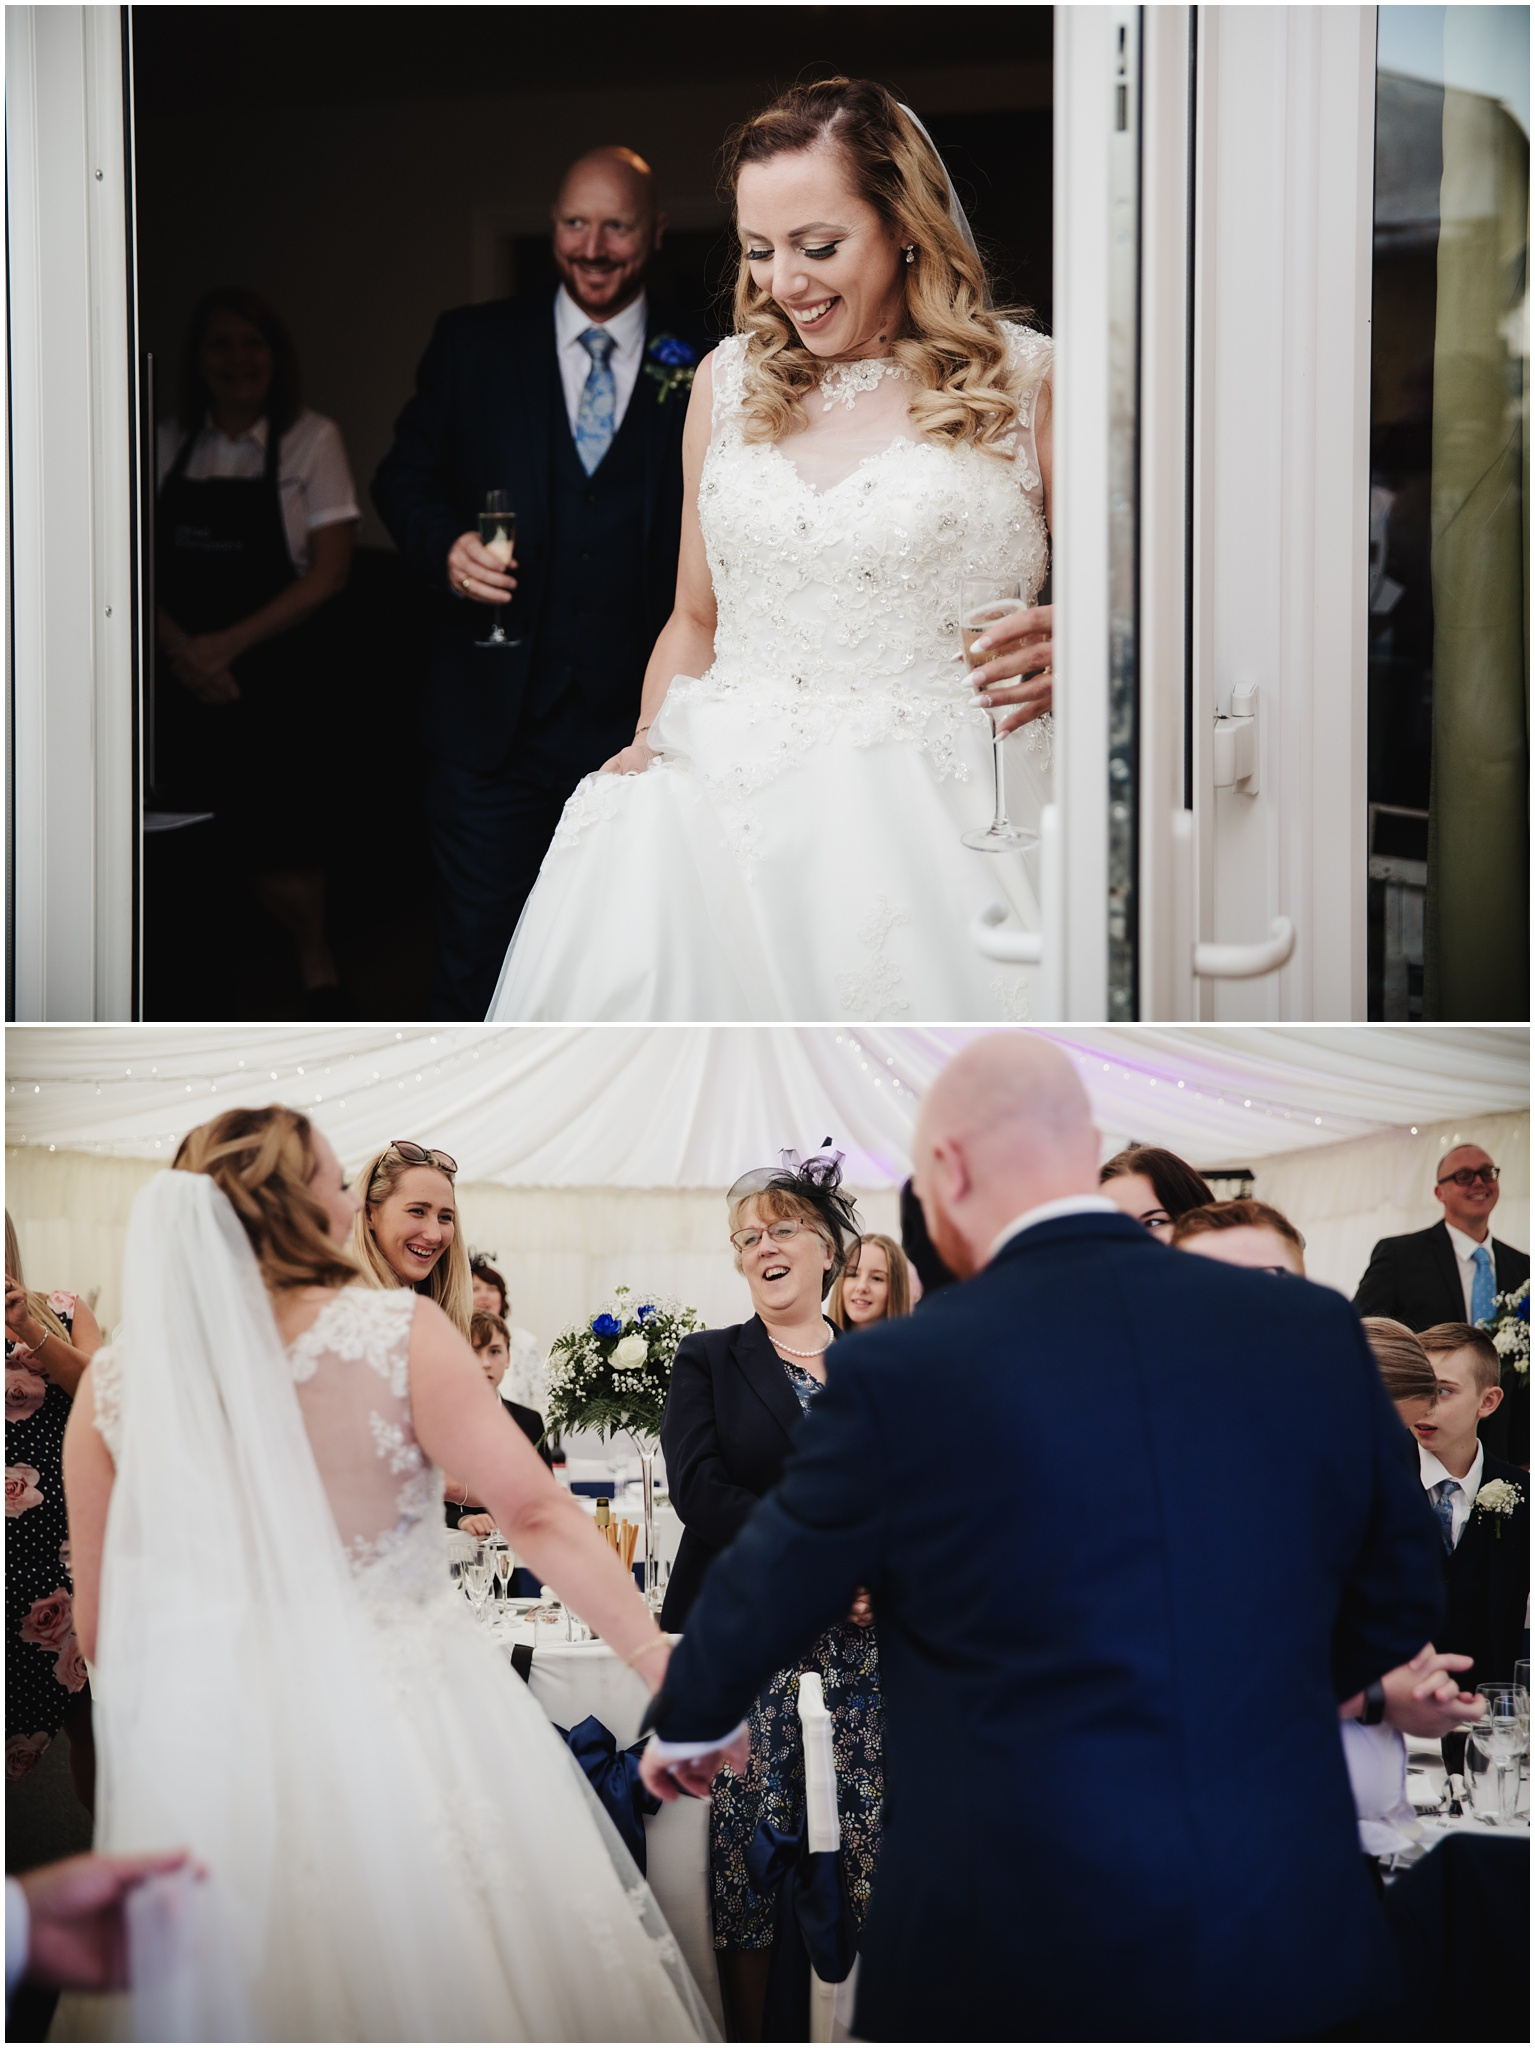 The Rochford Hotel wedding photography - Bride and groom enter reception room